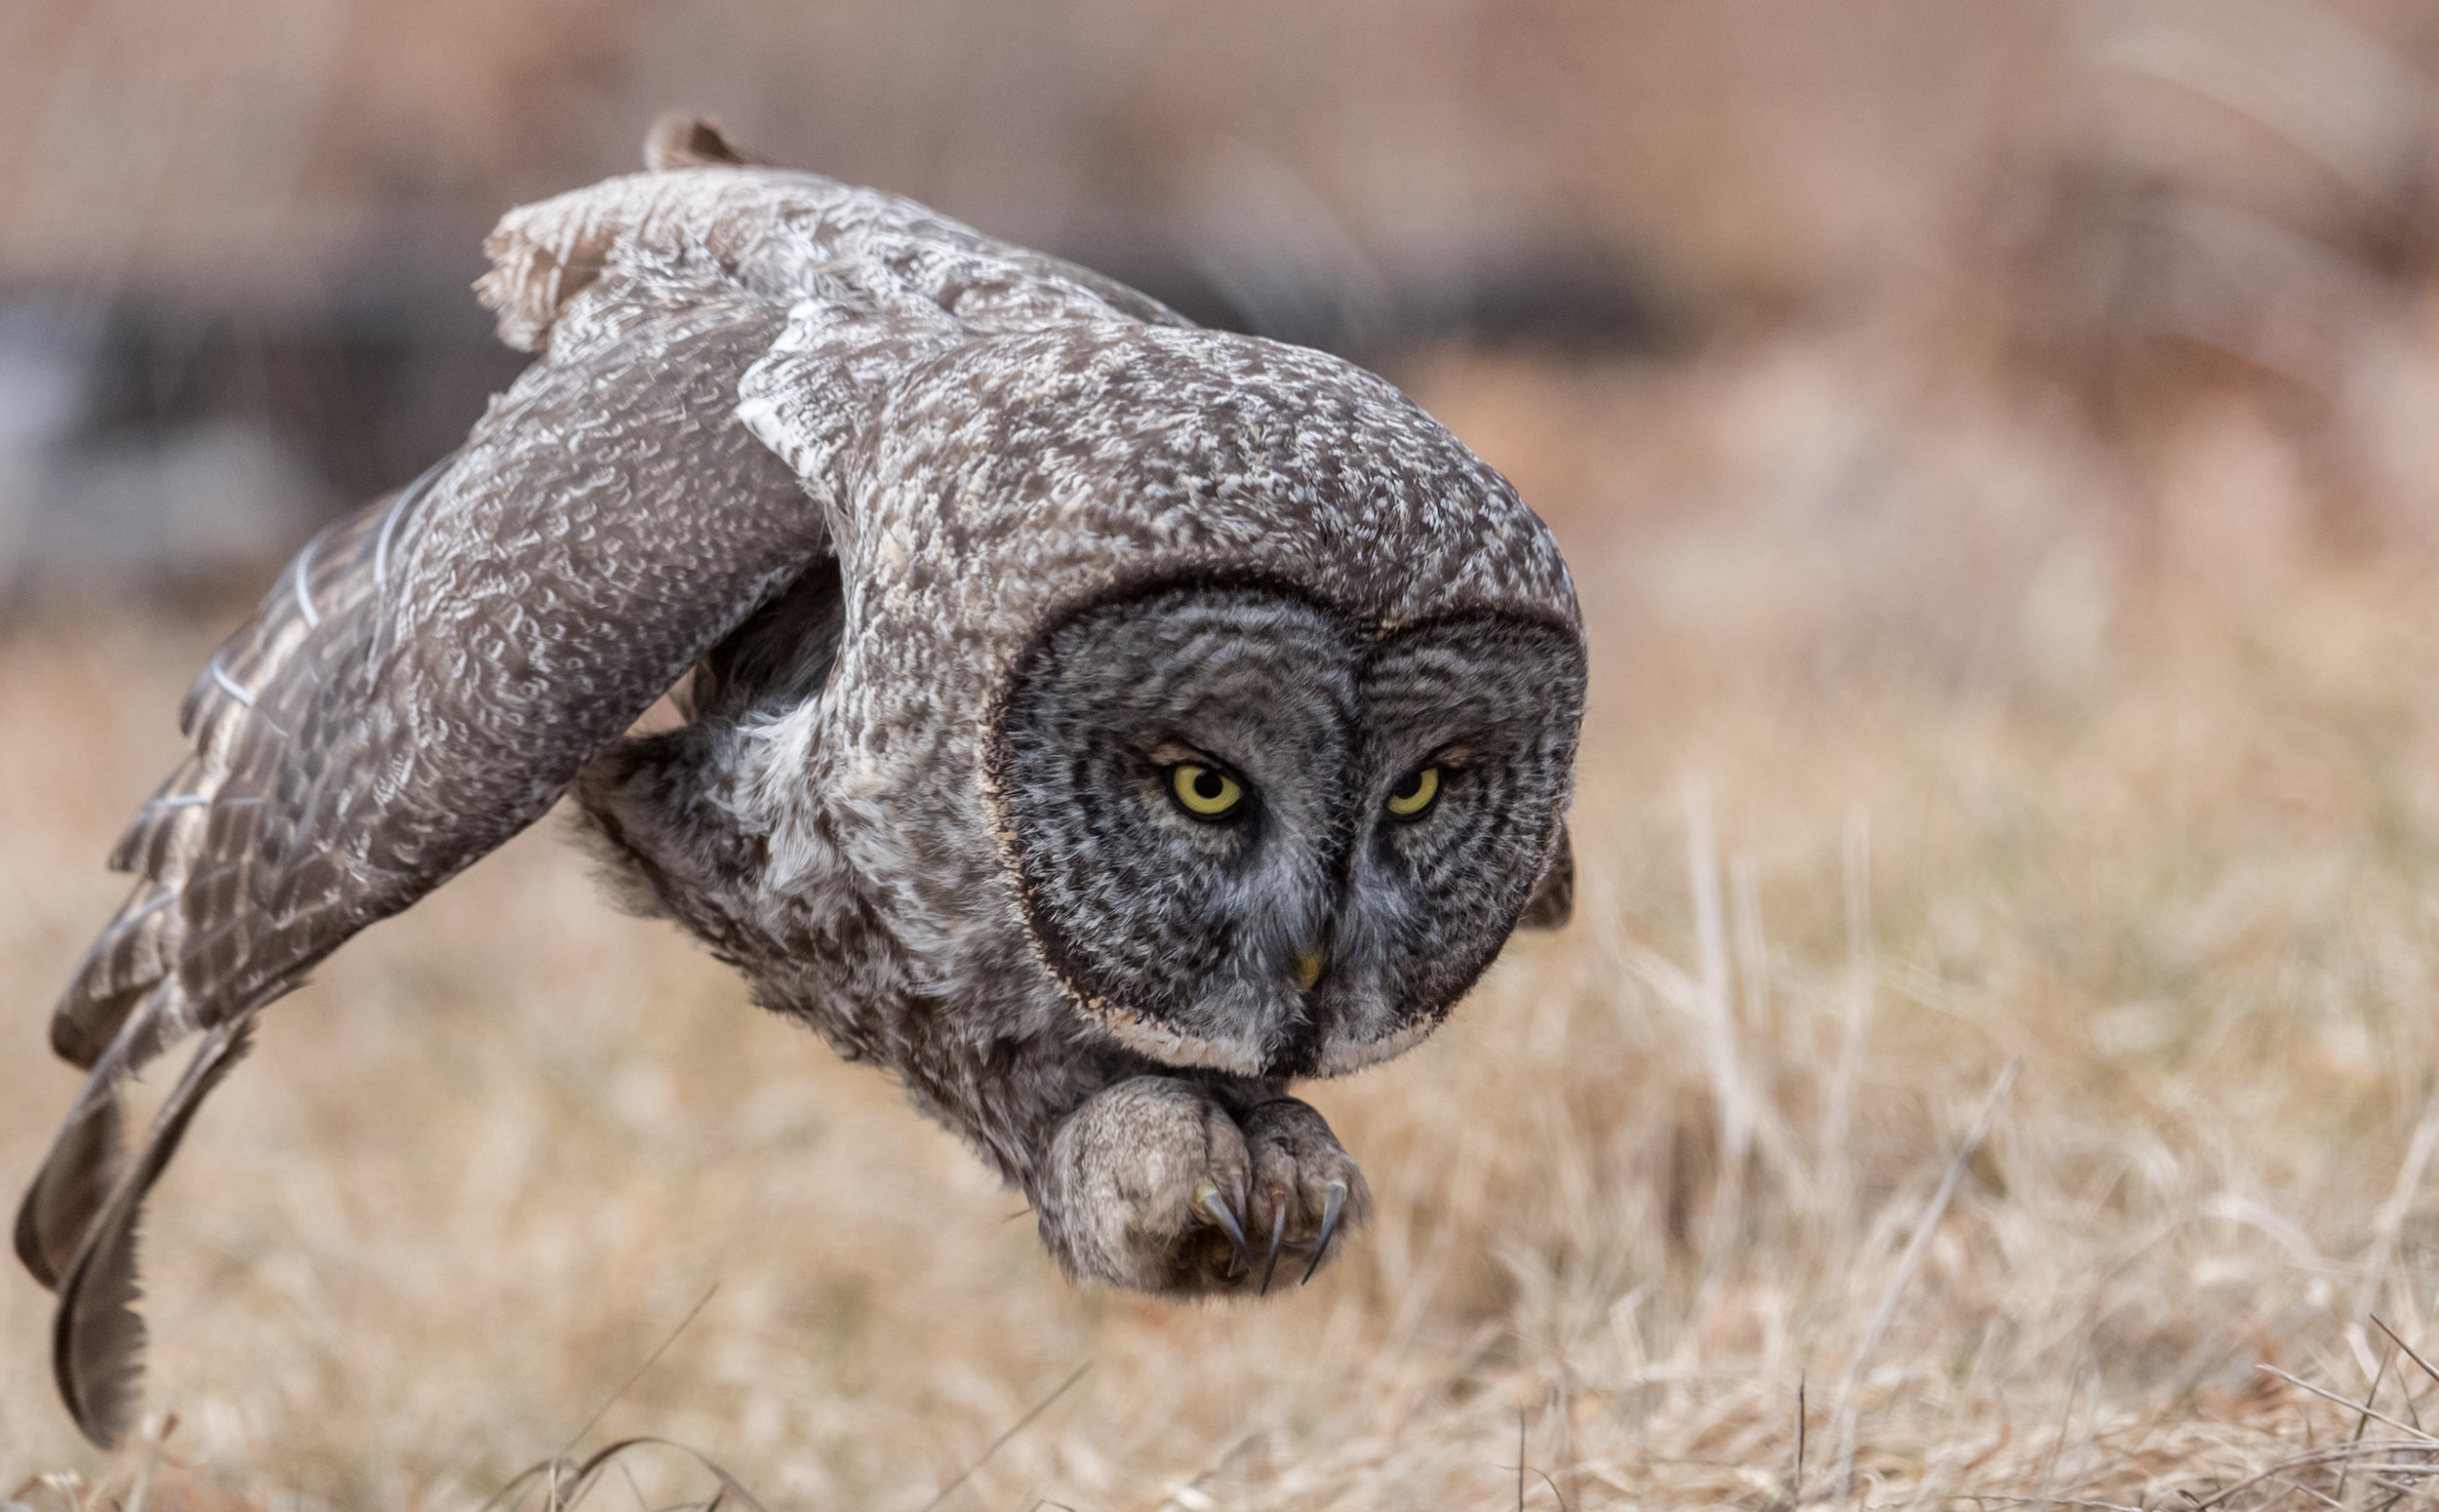 Great Gray Owl - This great gray owl image is my all time favorite photo that I have taken. This picture won the People's Choice Award in the 2017 National Geographic Nature Photographer of the Year contest and has been published worldwide. I made the 7 hour trip from my home to New Hampshire where this owl was located on a day when temperatures were close to -20F degrees with the strong winds. I had been photographing this owl from a distance when it began its evening hunt. The owl took flight and landed on a post that was only a few feet from me. Being that I was shooting with a 600mm lens I had to quickly back up as the owl was too close. While I was in the process of relocating, the owl spotted a vole in the grass below it and attacked. I rushed to get set up just in time to capture the tail end of the owl's attack. The first few frames were out of focus as I had not fully set up yet,but luckily this photo was one of the few that turned out perfectly! Camera settings: Nikon D5 & 600mm f4 VR lens: Manual Mode:1/2500, f5.6, ISO 1250.